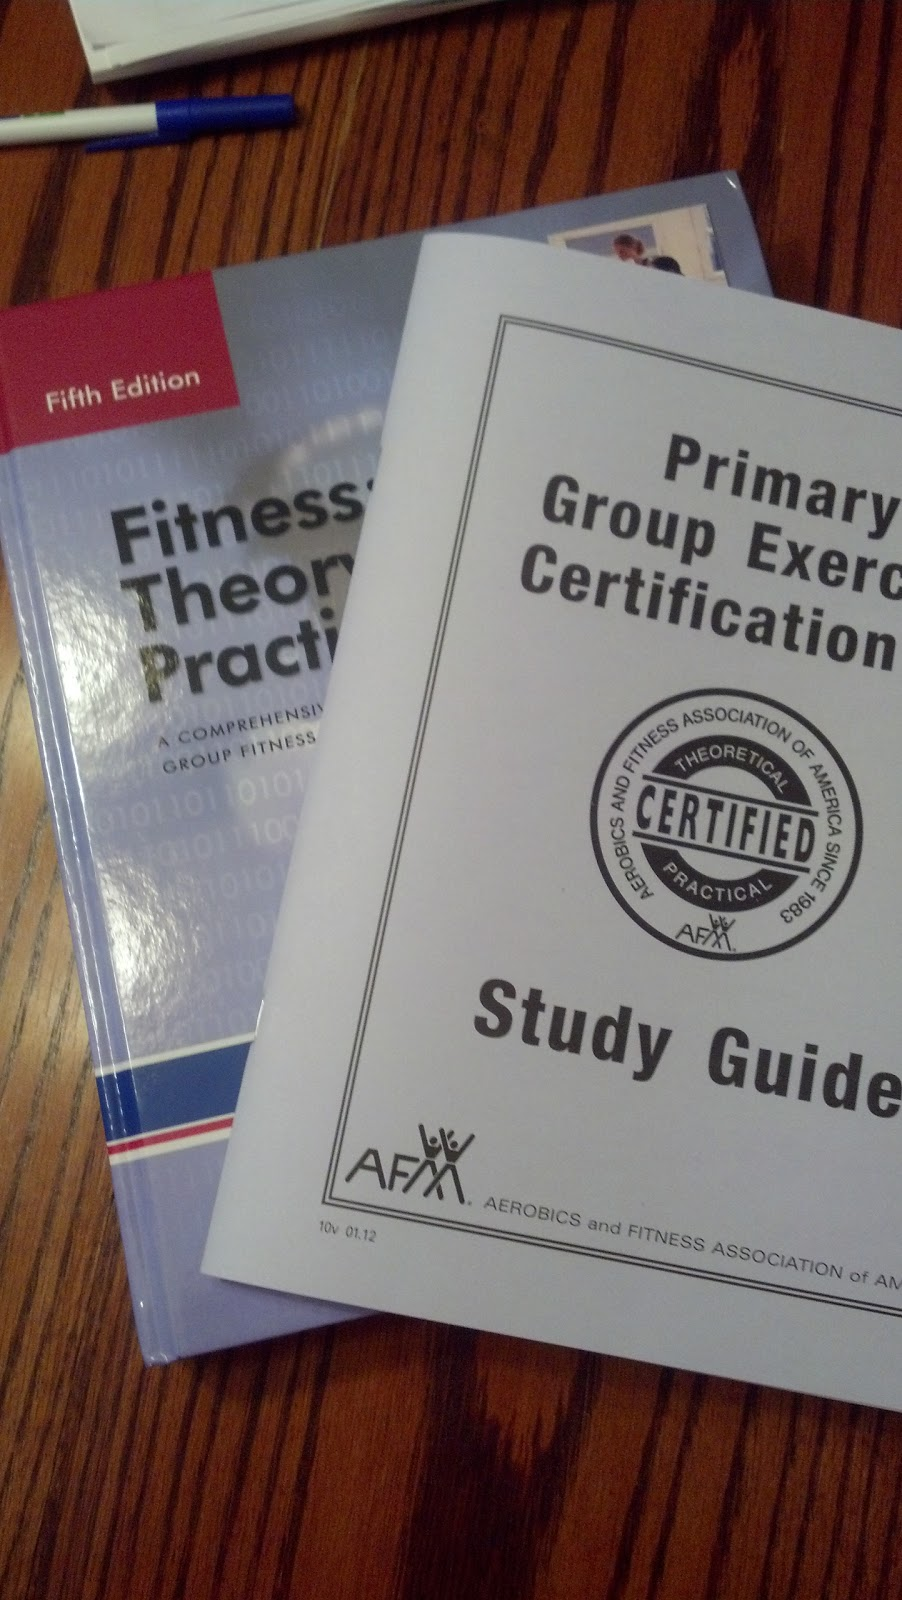 Stepping My Way Afaa Certification